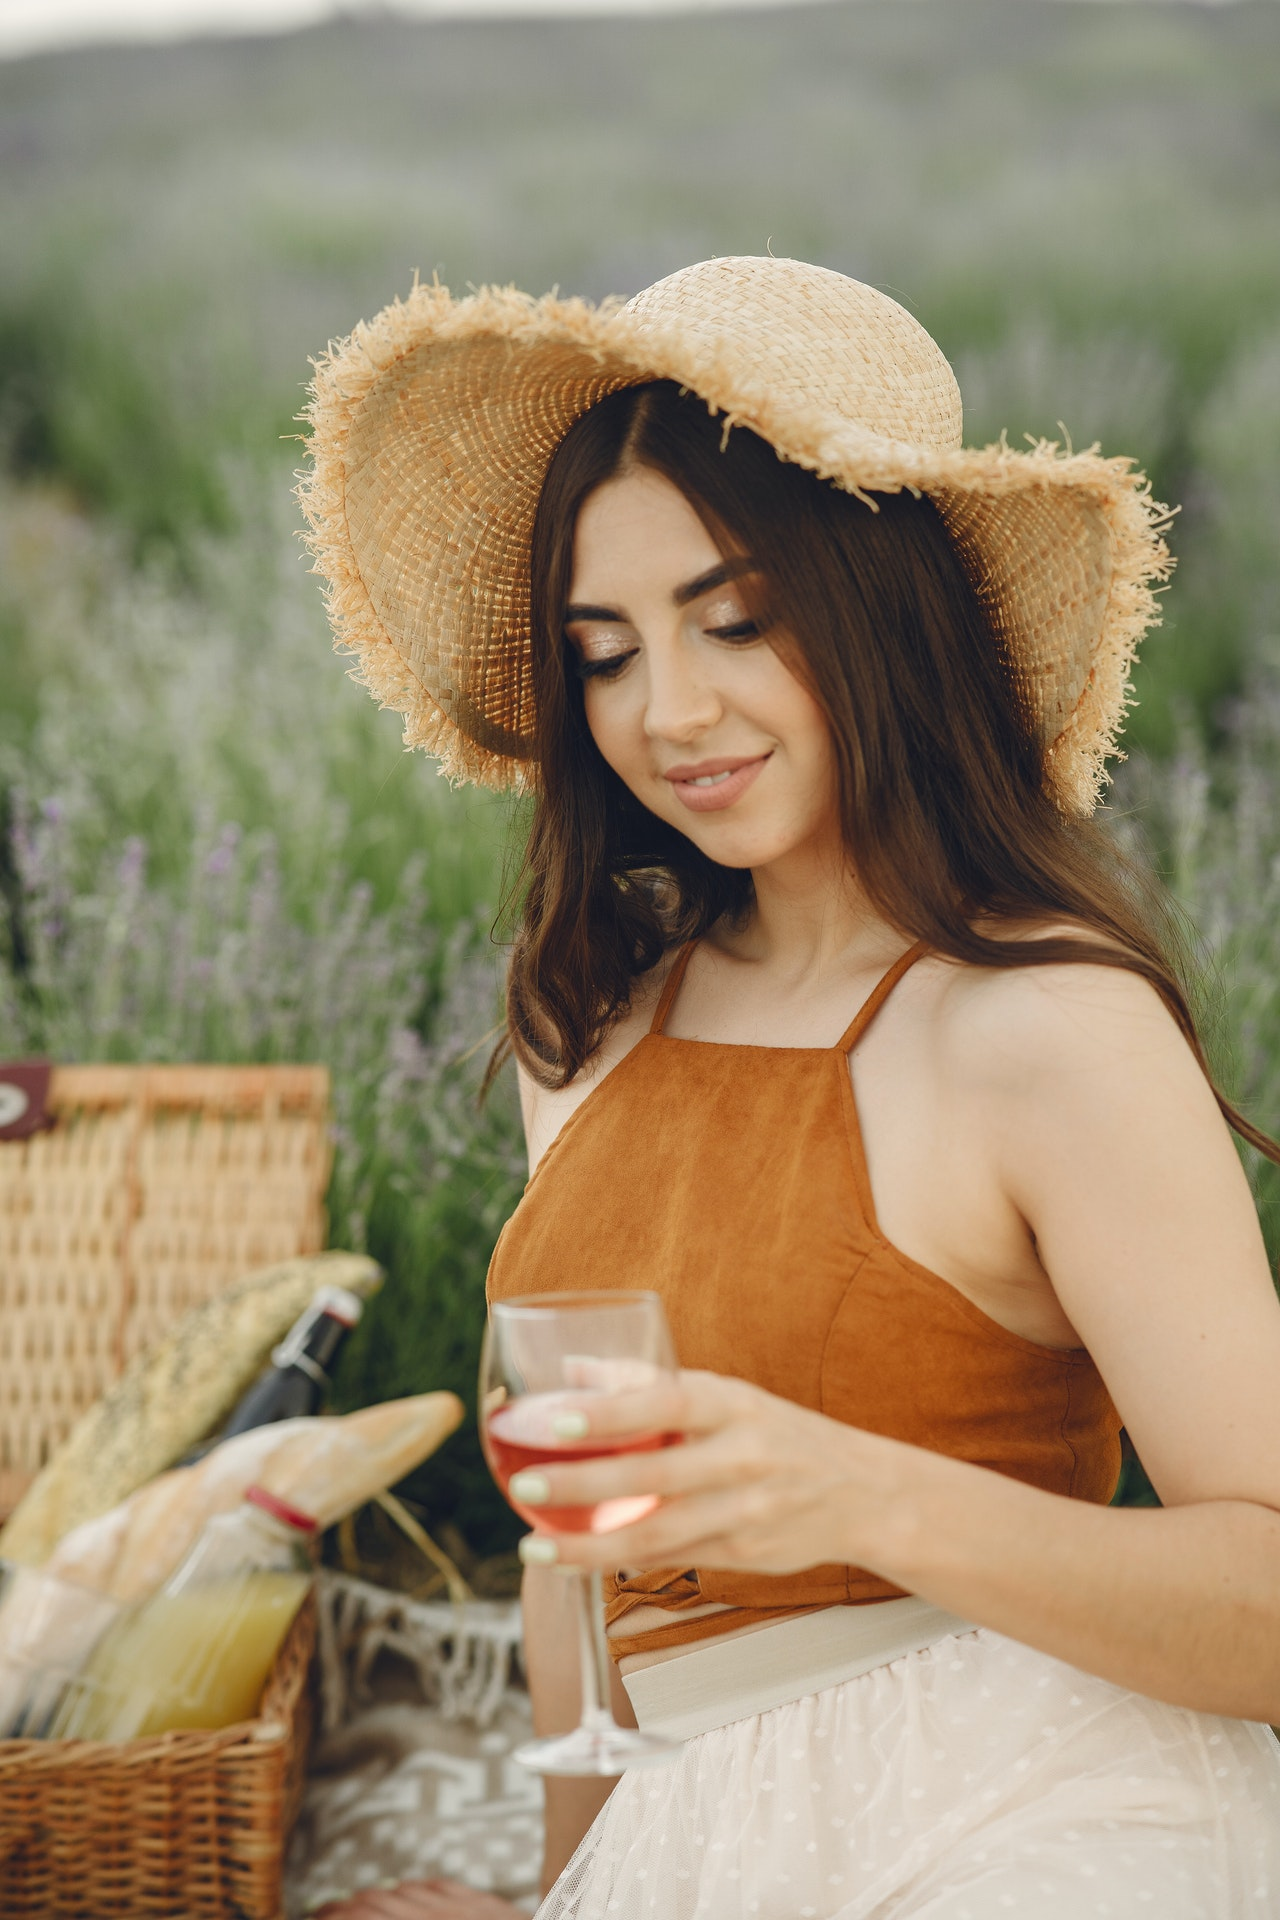 woman drinking wine in a park